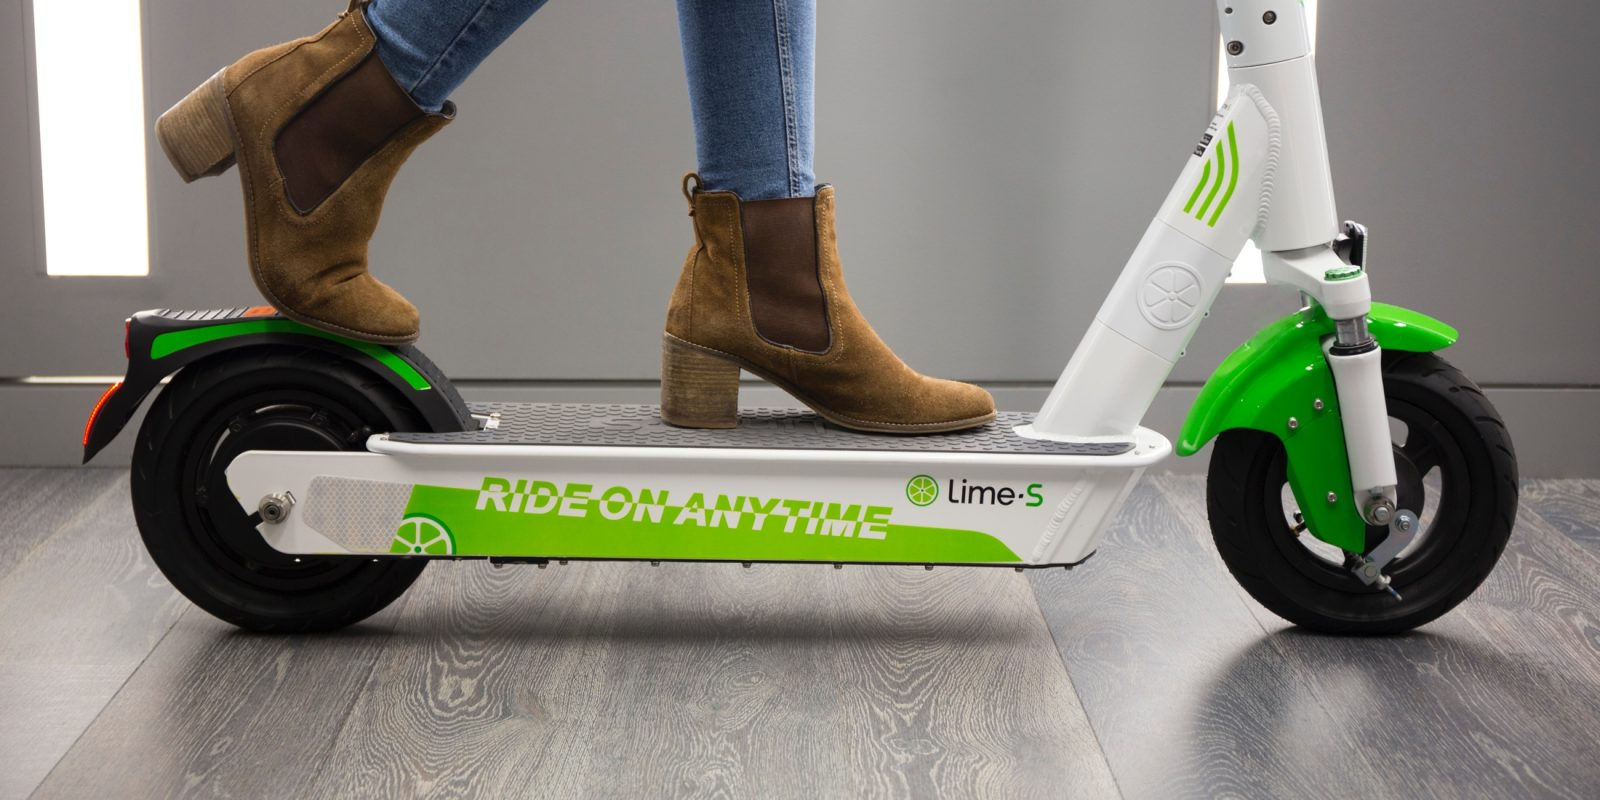 medium resolution of lime unveils new electric scooter fuels the e scooter arms race